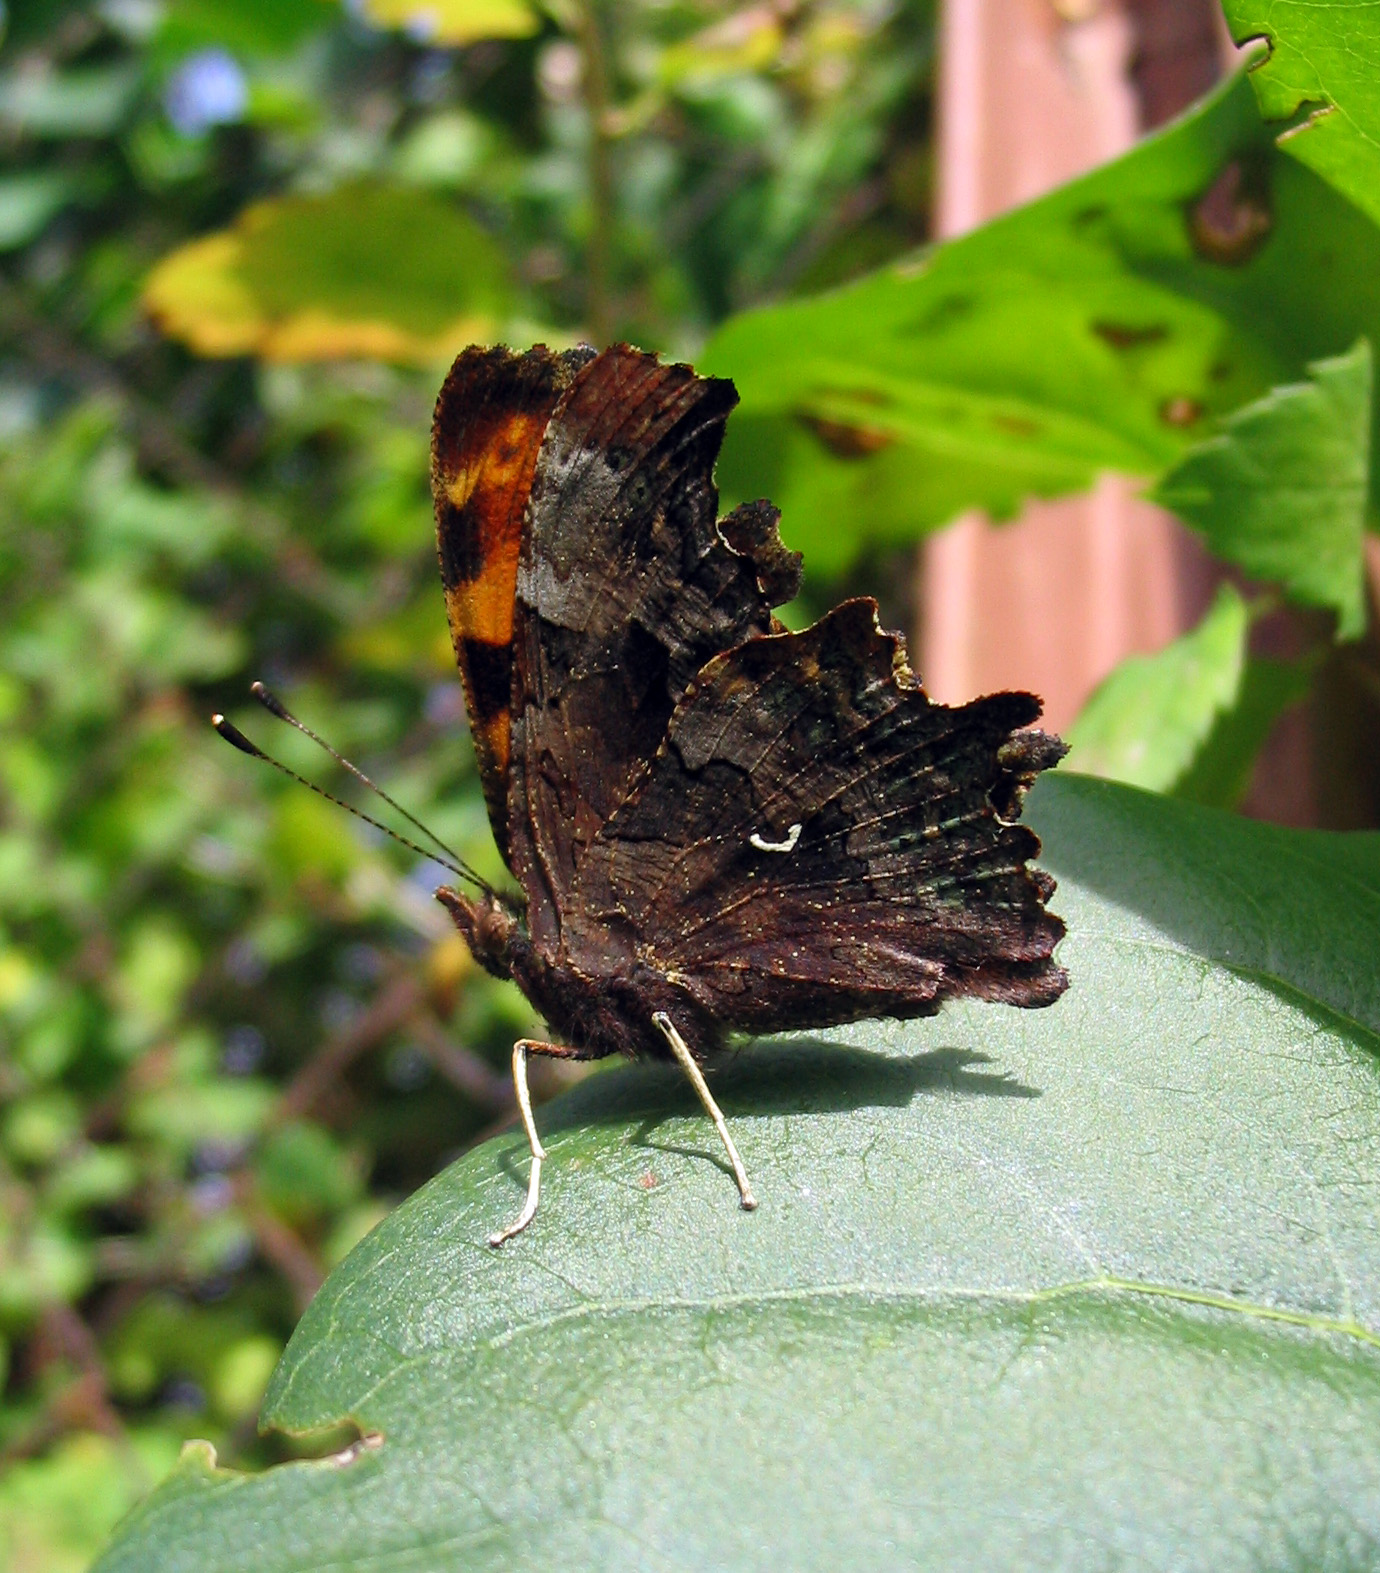 https://upload.wikimedia.org/wikipedia/commons/8/8f/C-Falter_Polygonia_C-album_Profil.jpg